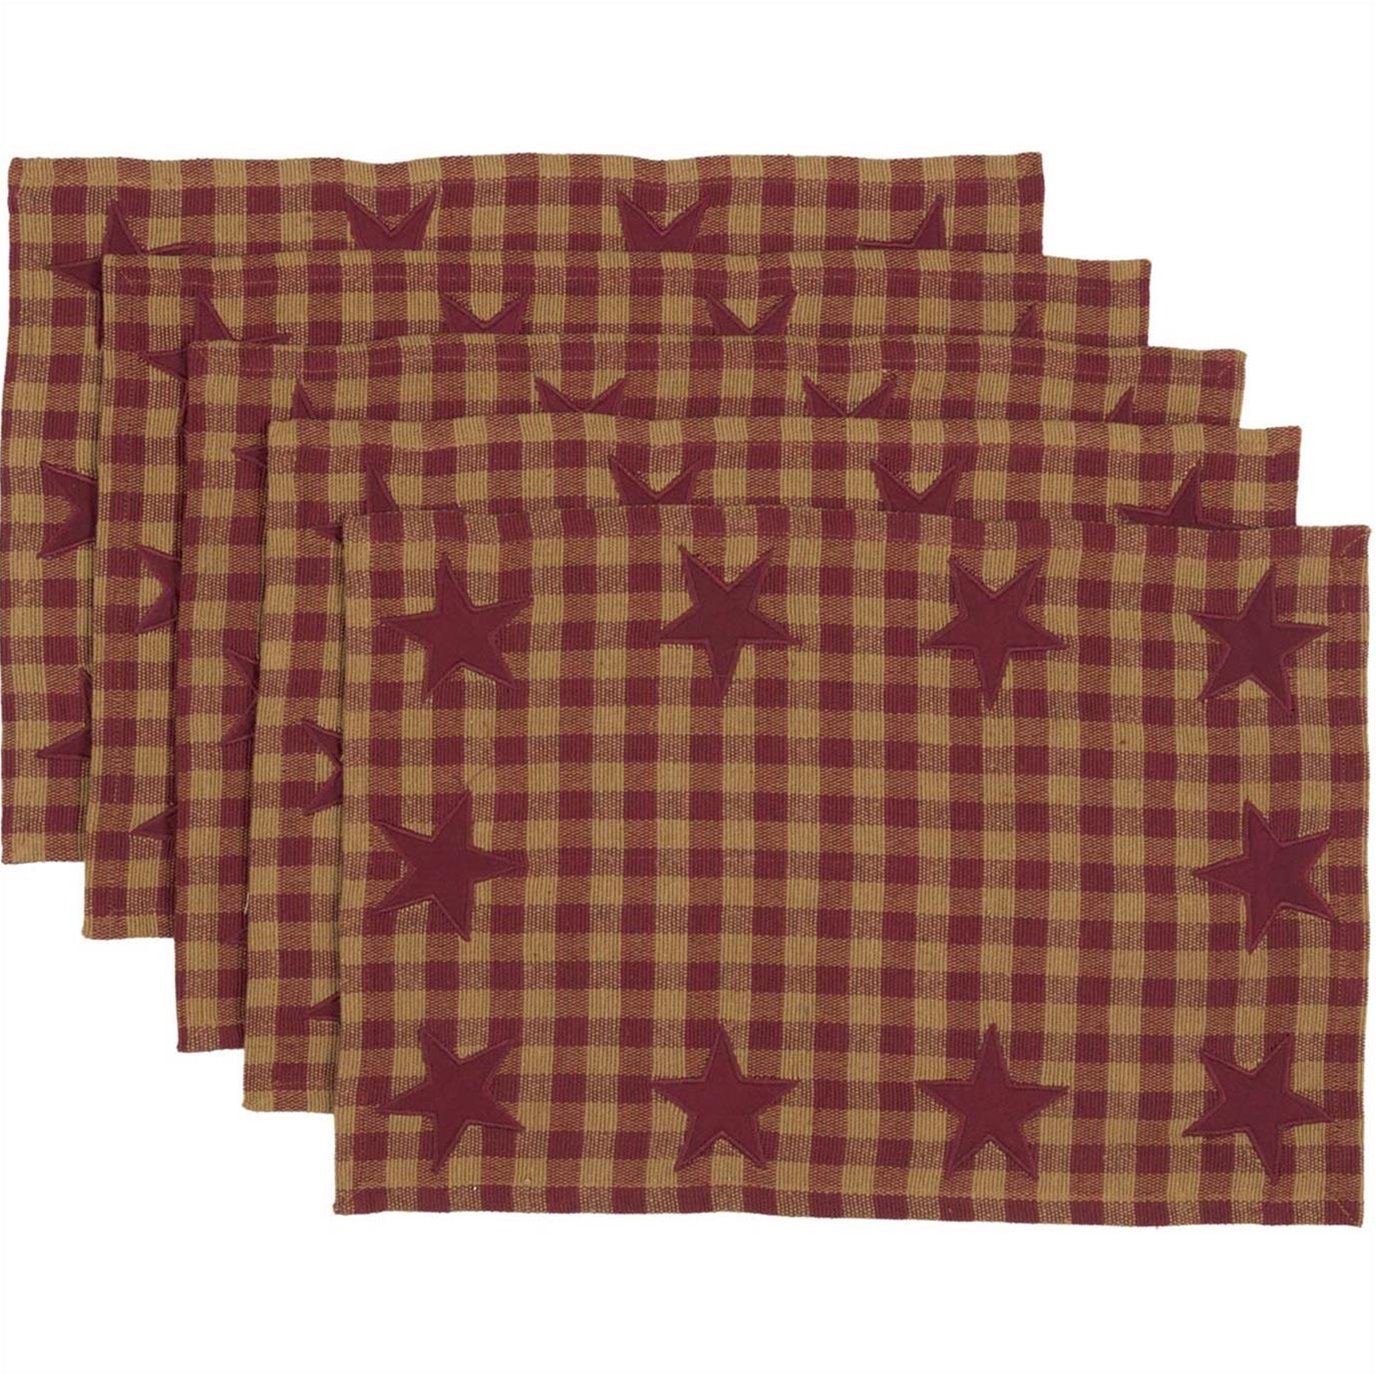 Burgundy Star Placemat Set of 6 12x18